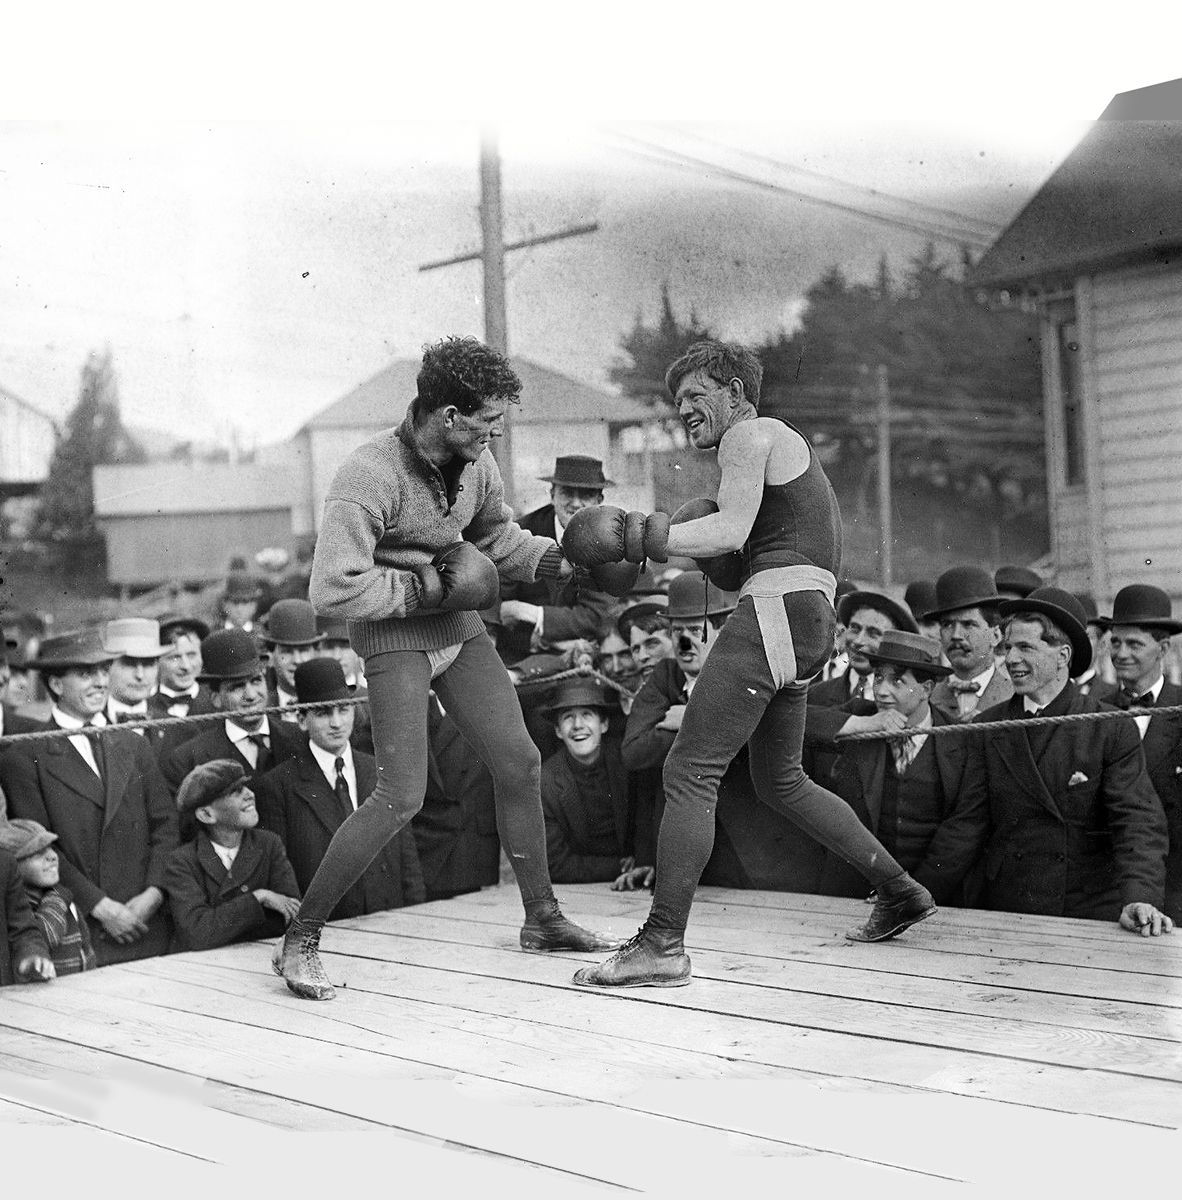 1900s Packy McFarland Boxing Original Glass Plate Negative